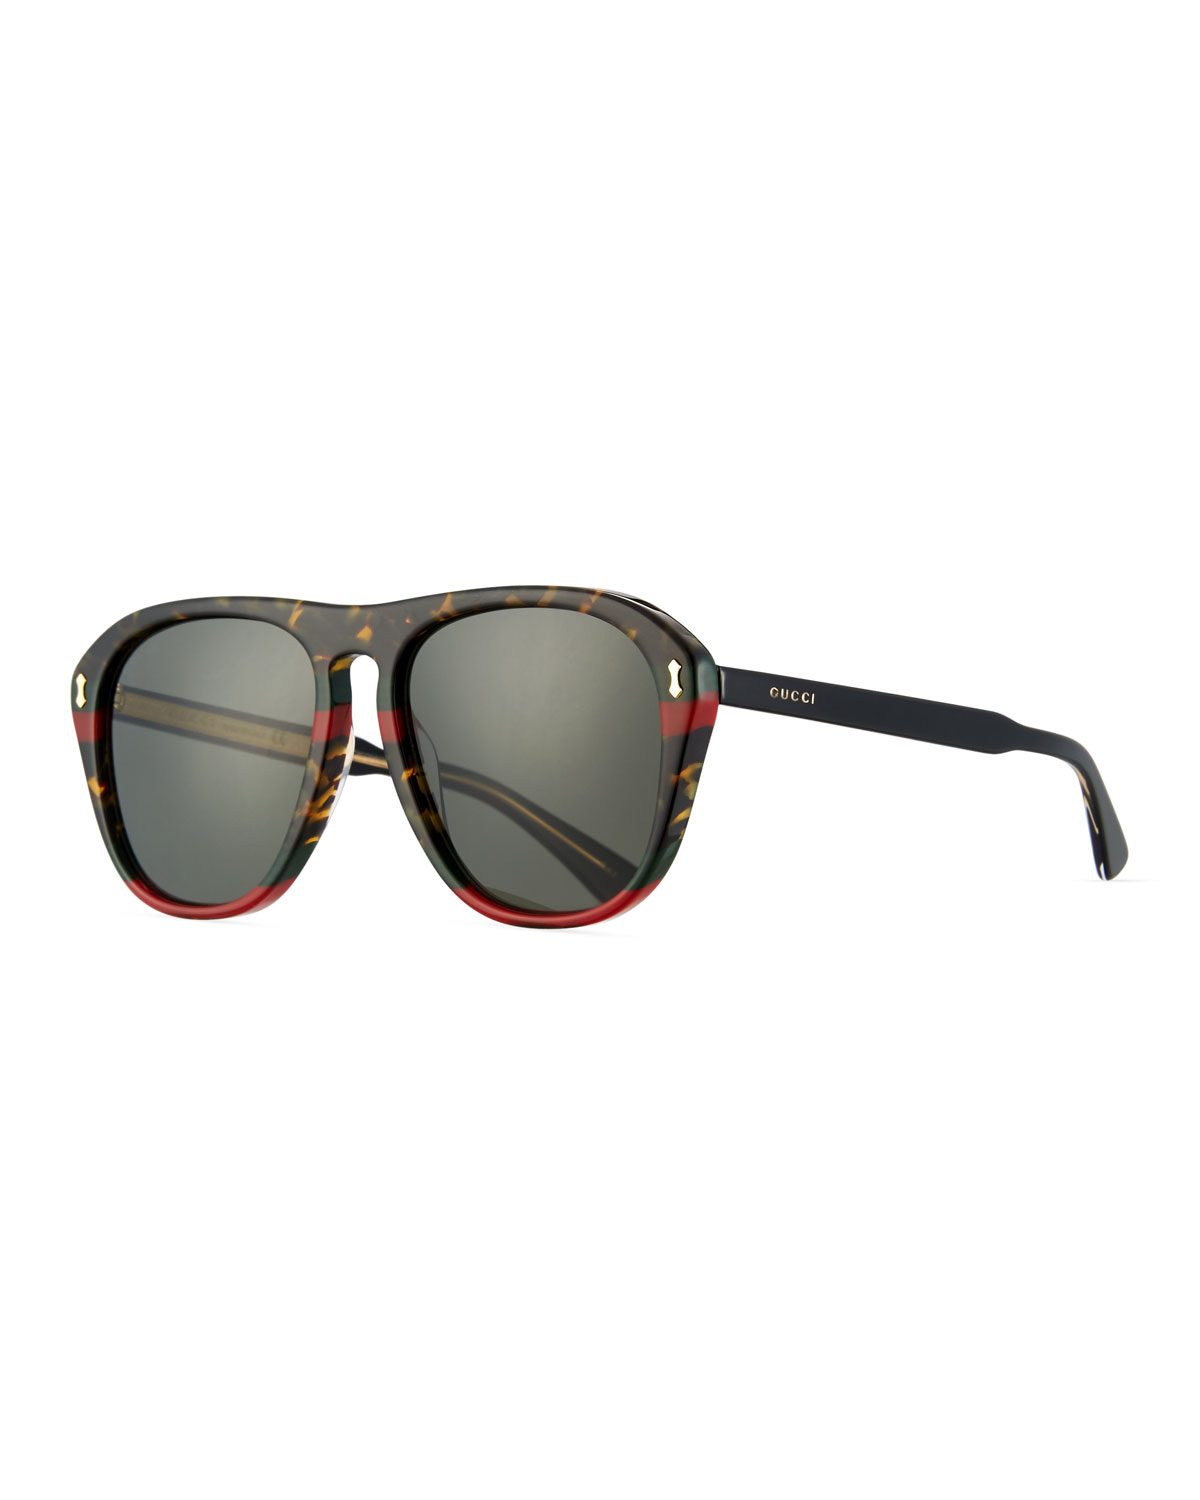 fd280cec4e6 Gucci Men s Acetate Aviator Sunglasses